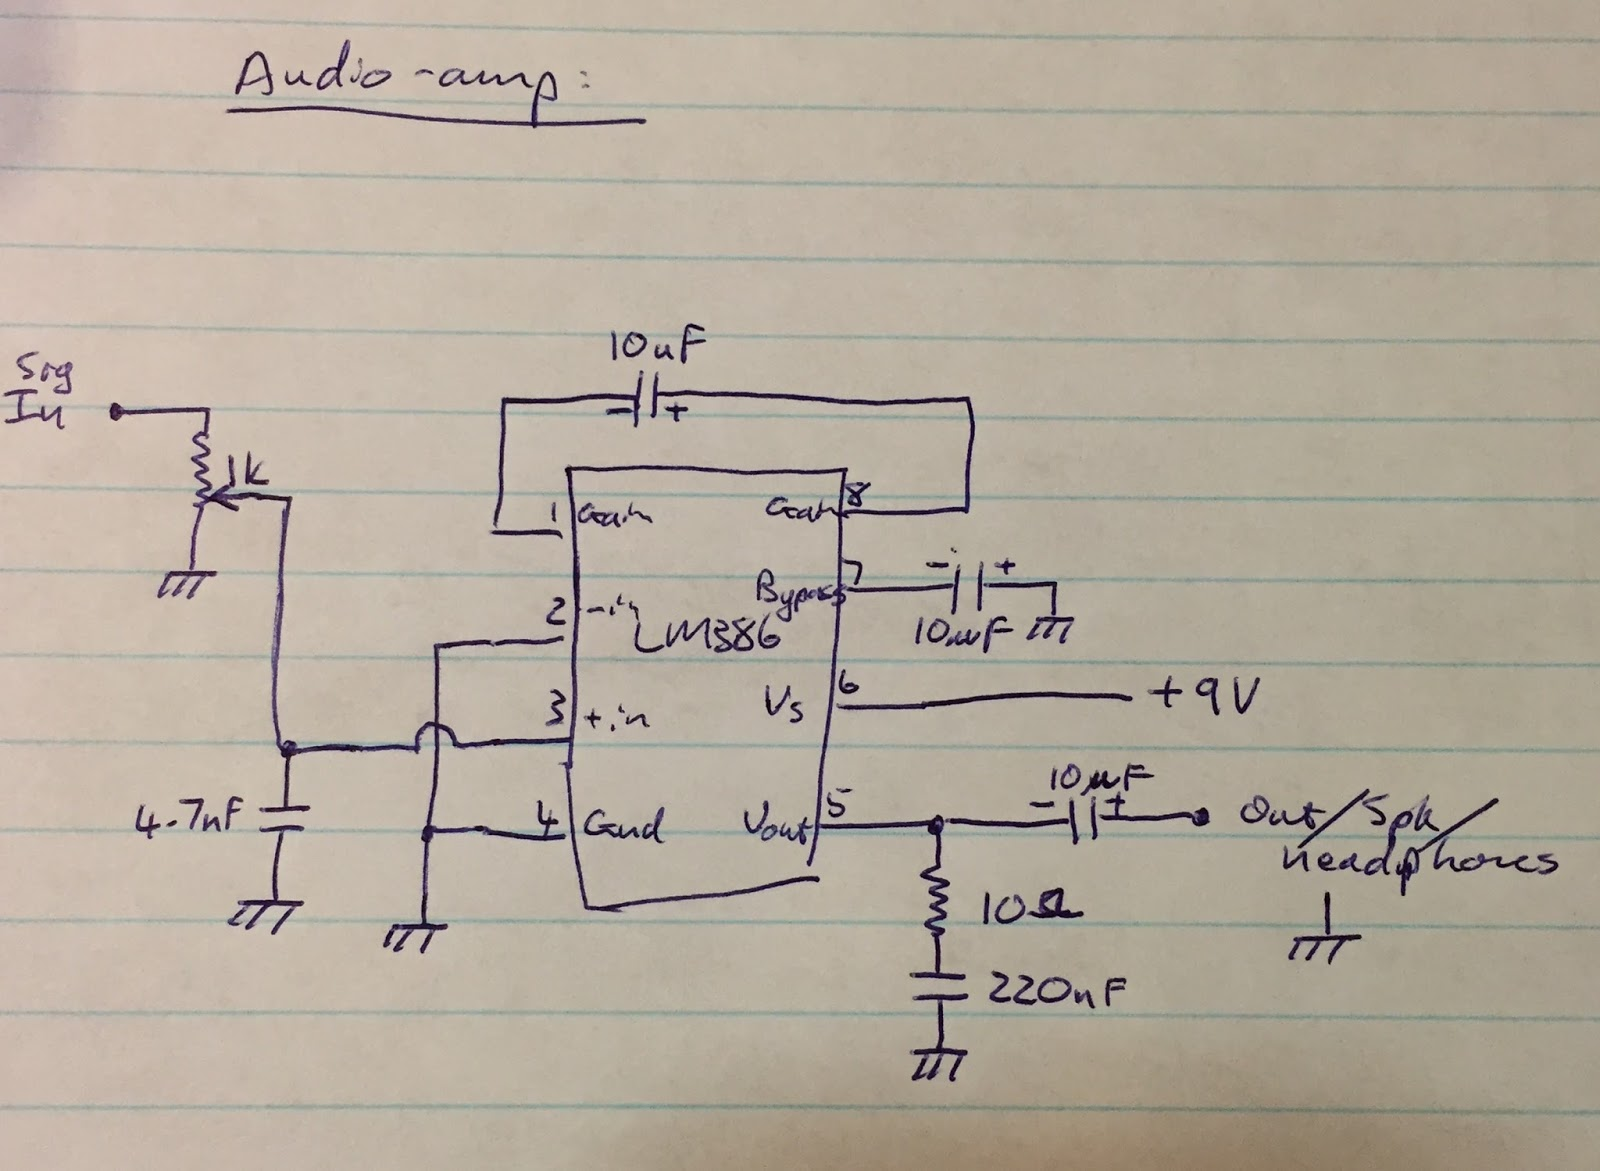 Simple Audio Mixer Circuit Together With Simple Audio Mixer Circuit